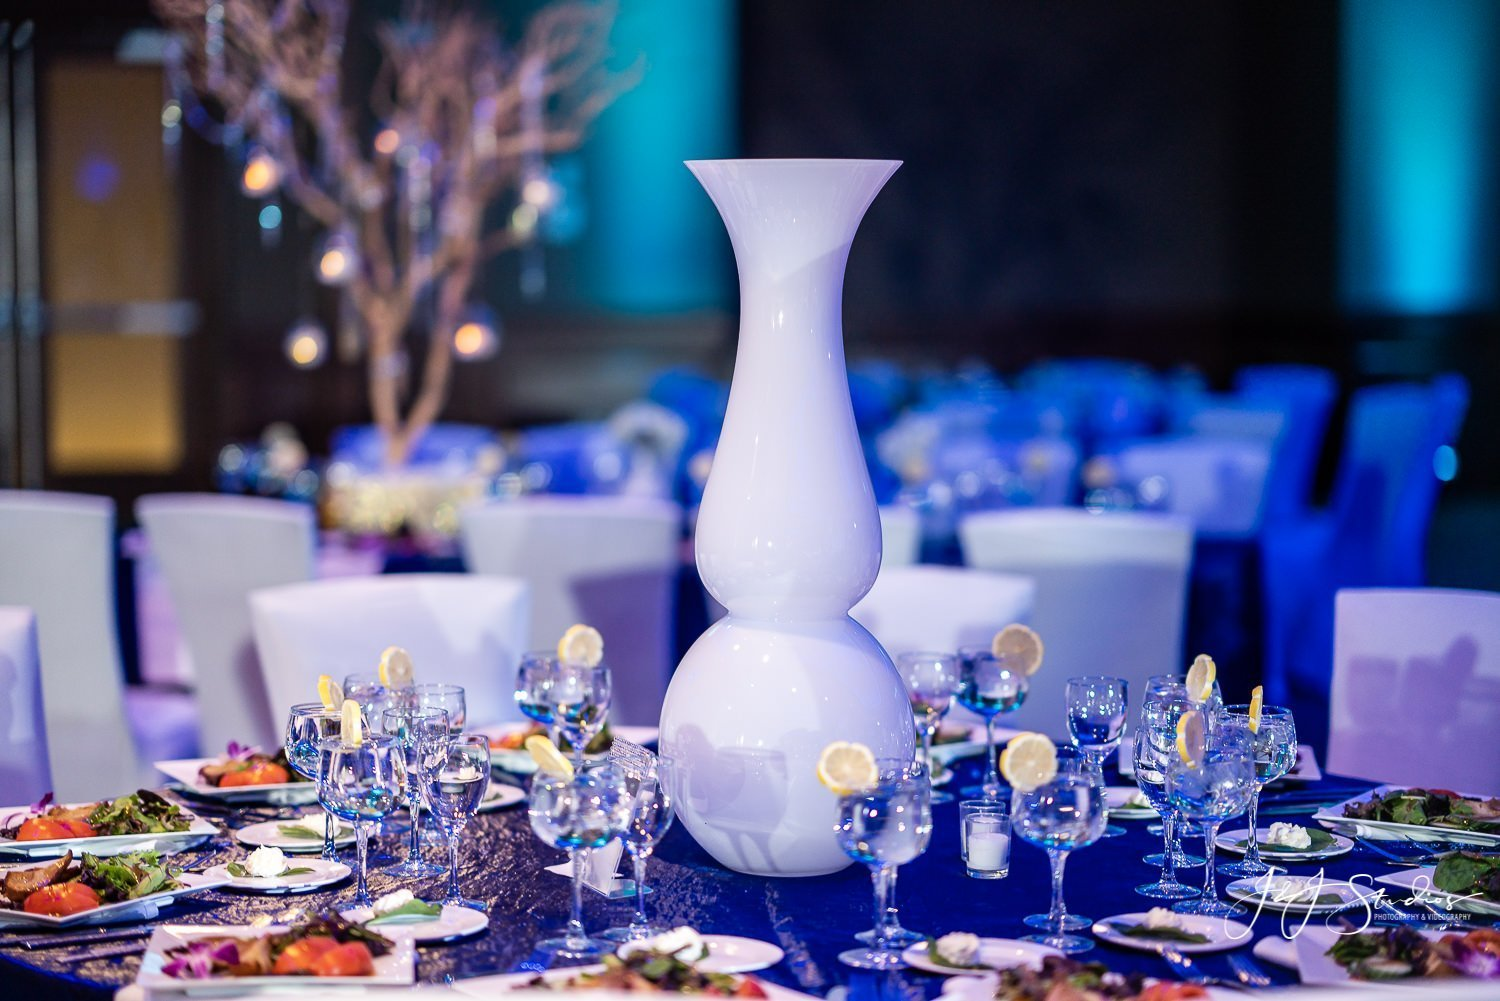 large vase centerpieces mae and company bat mitzvah